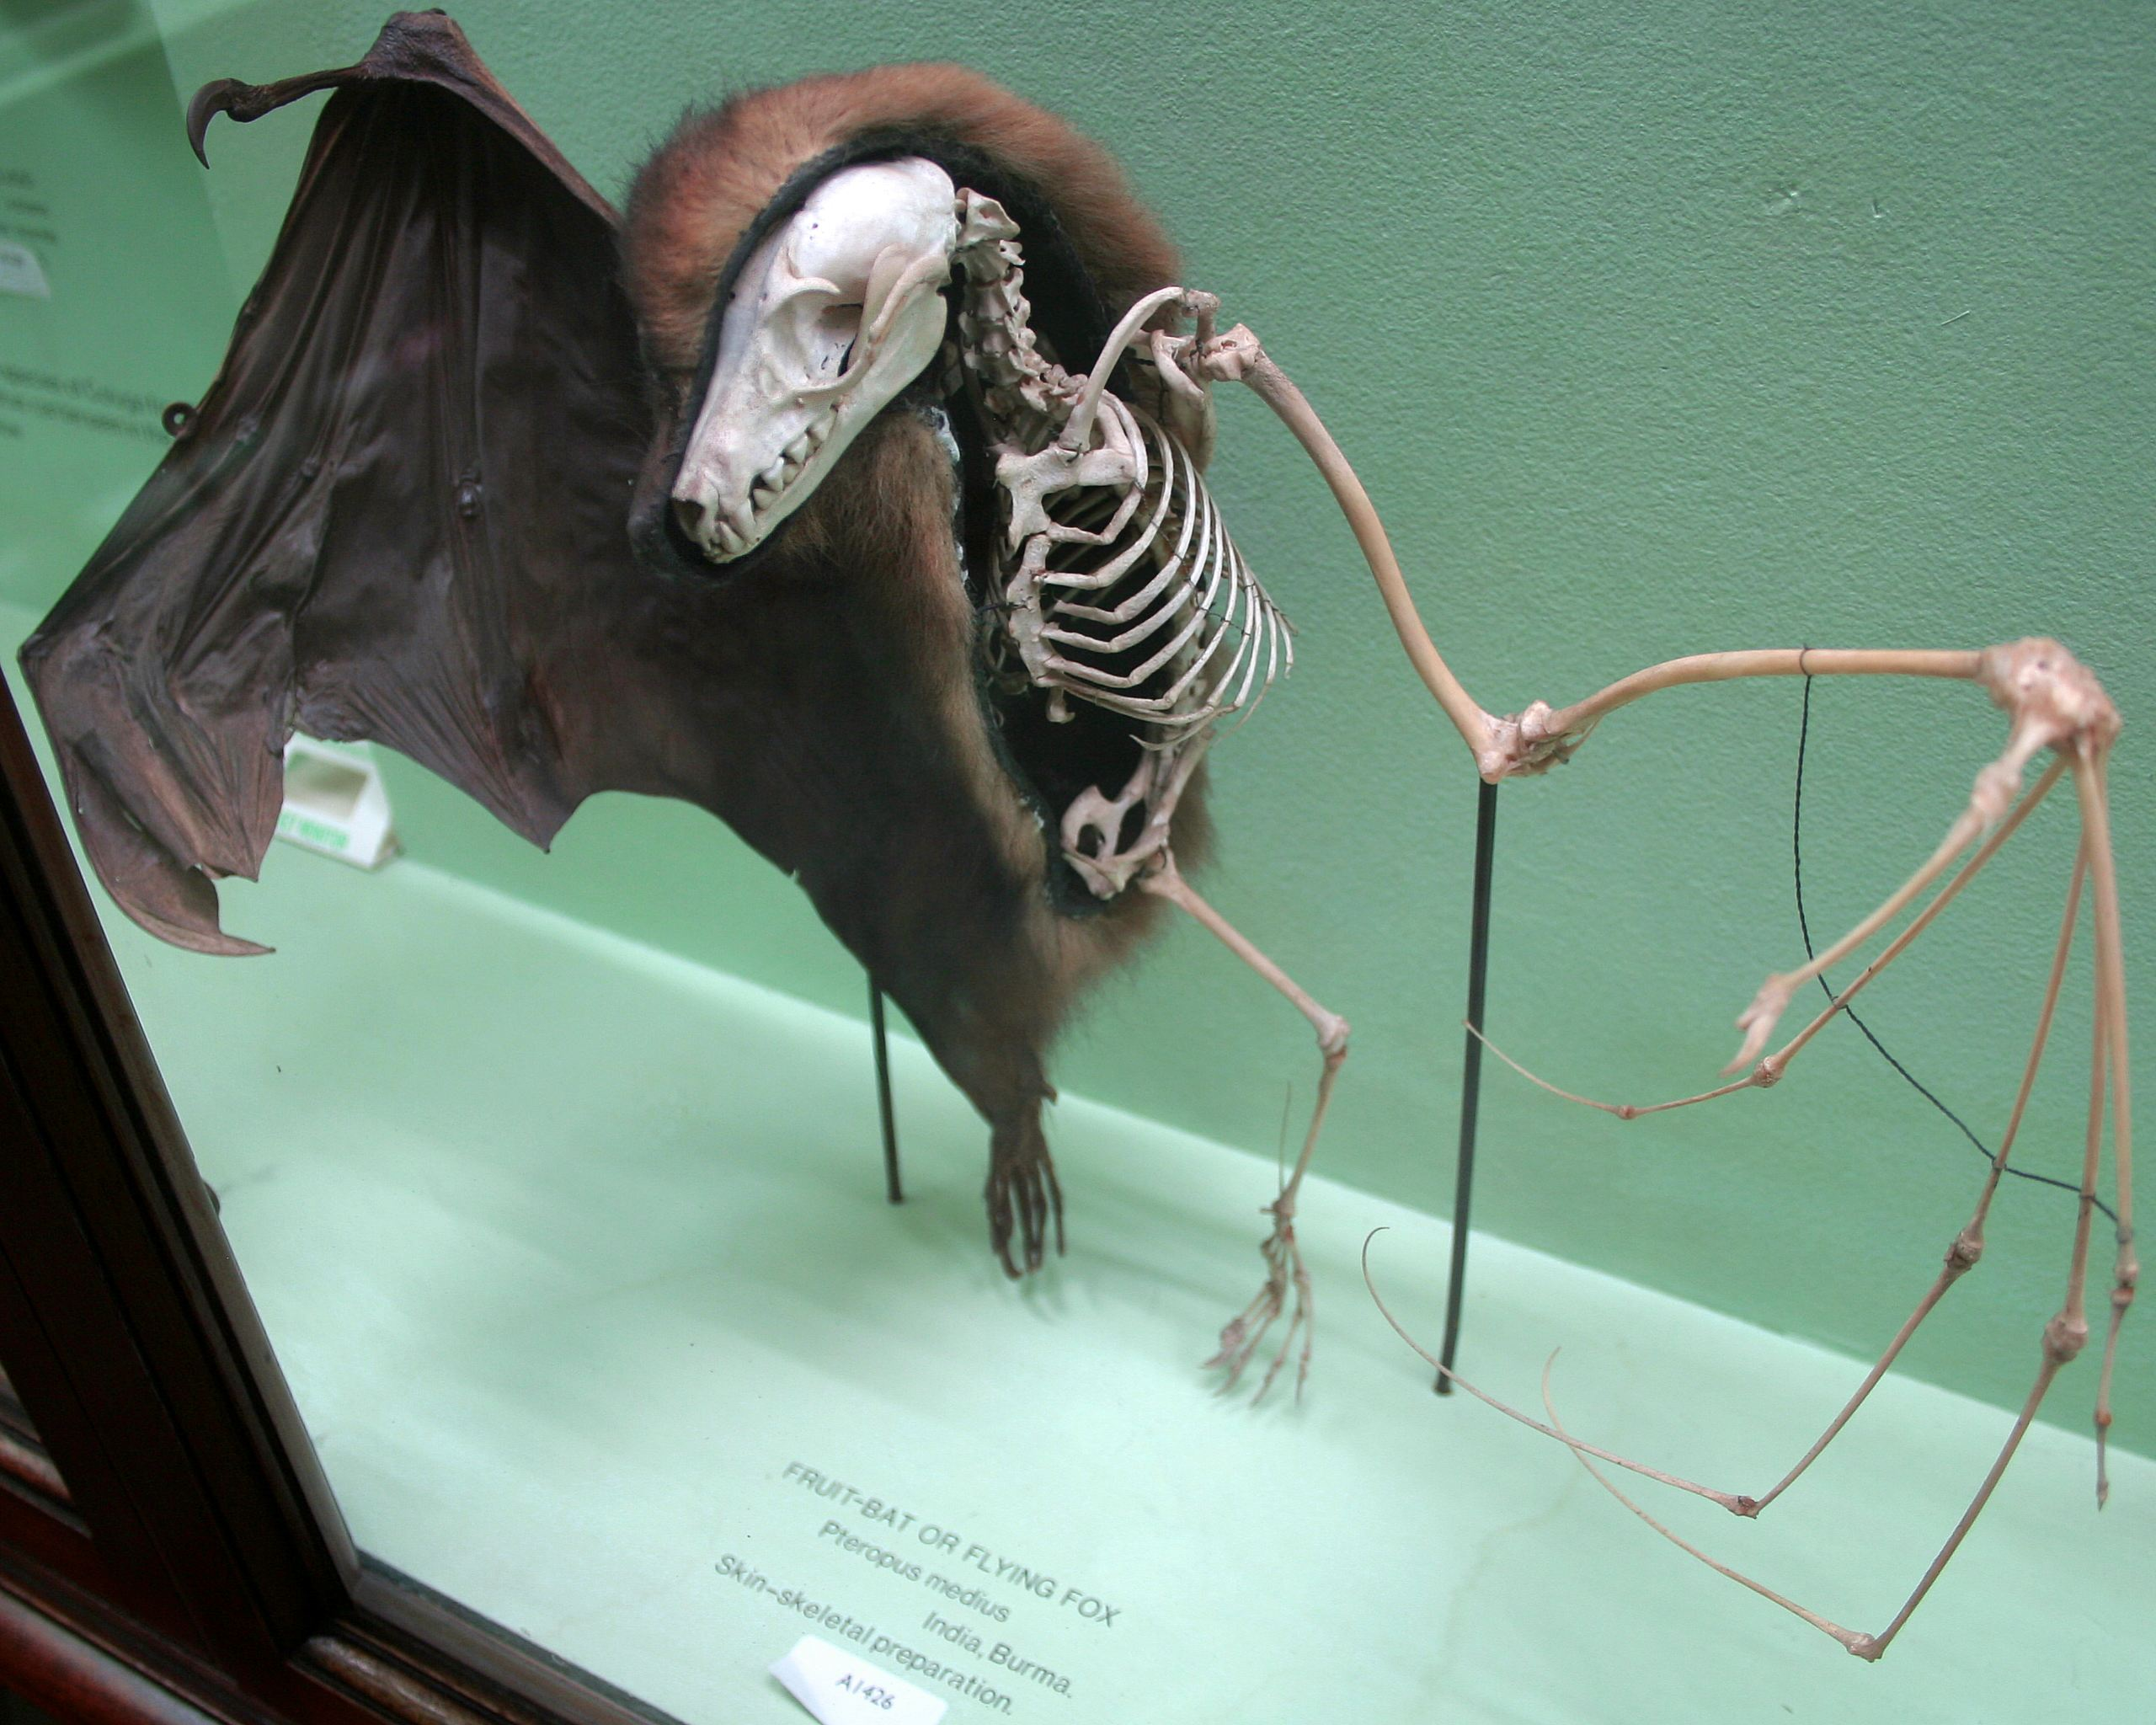 A preserved fruit bat showing how the skeleton fits inside its skin